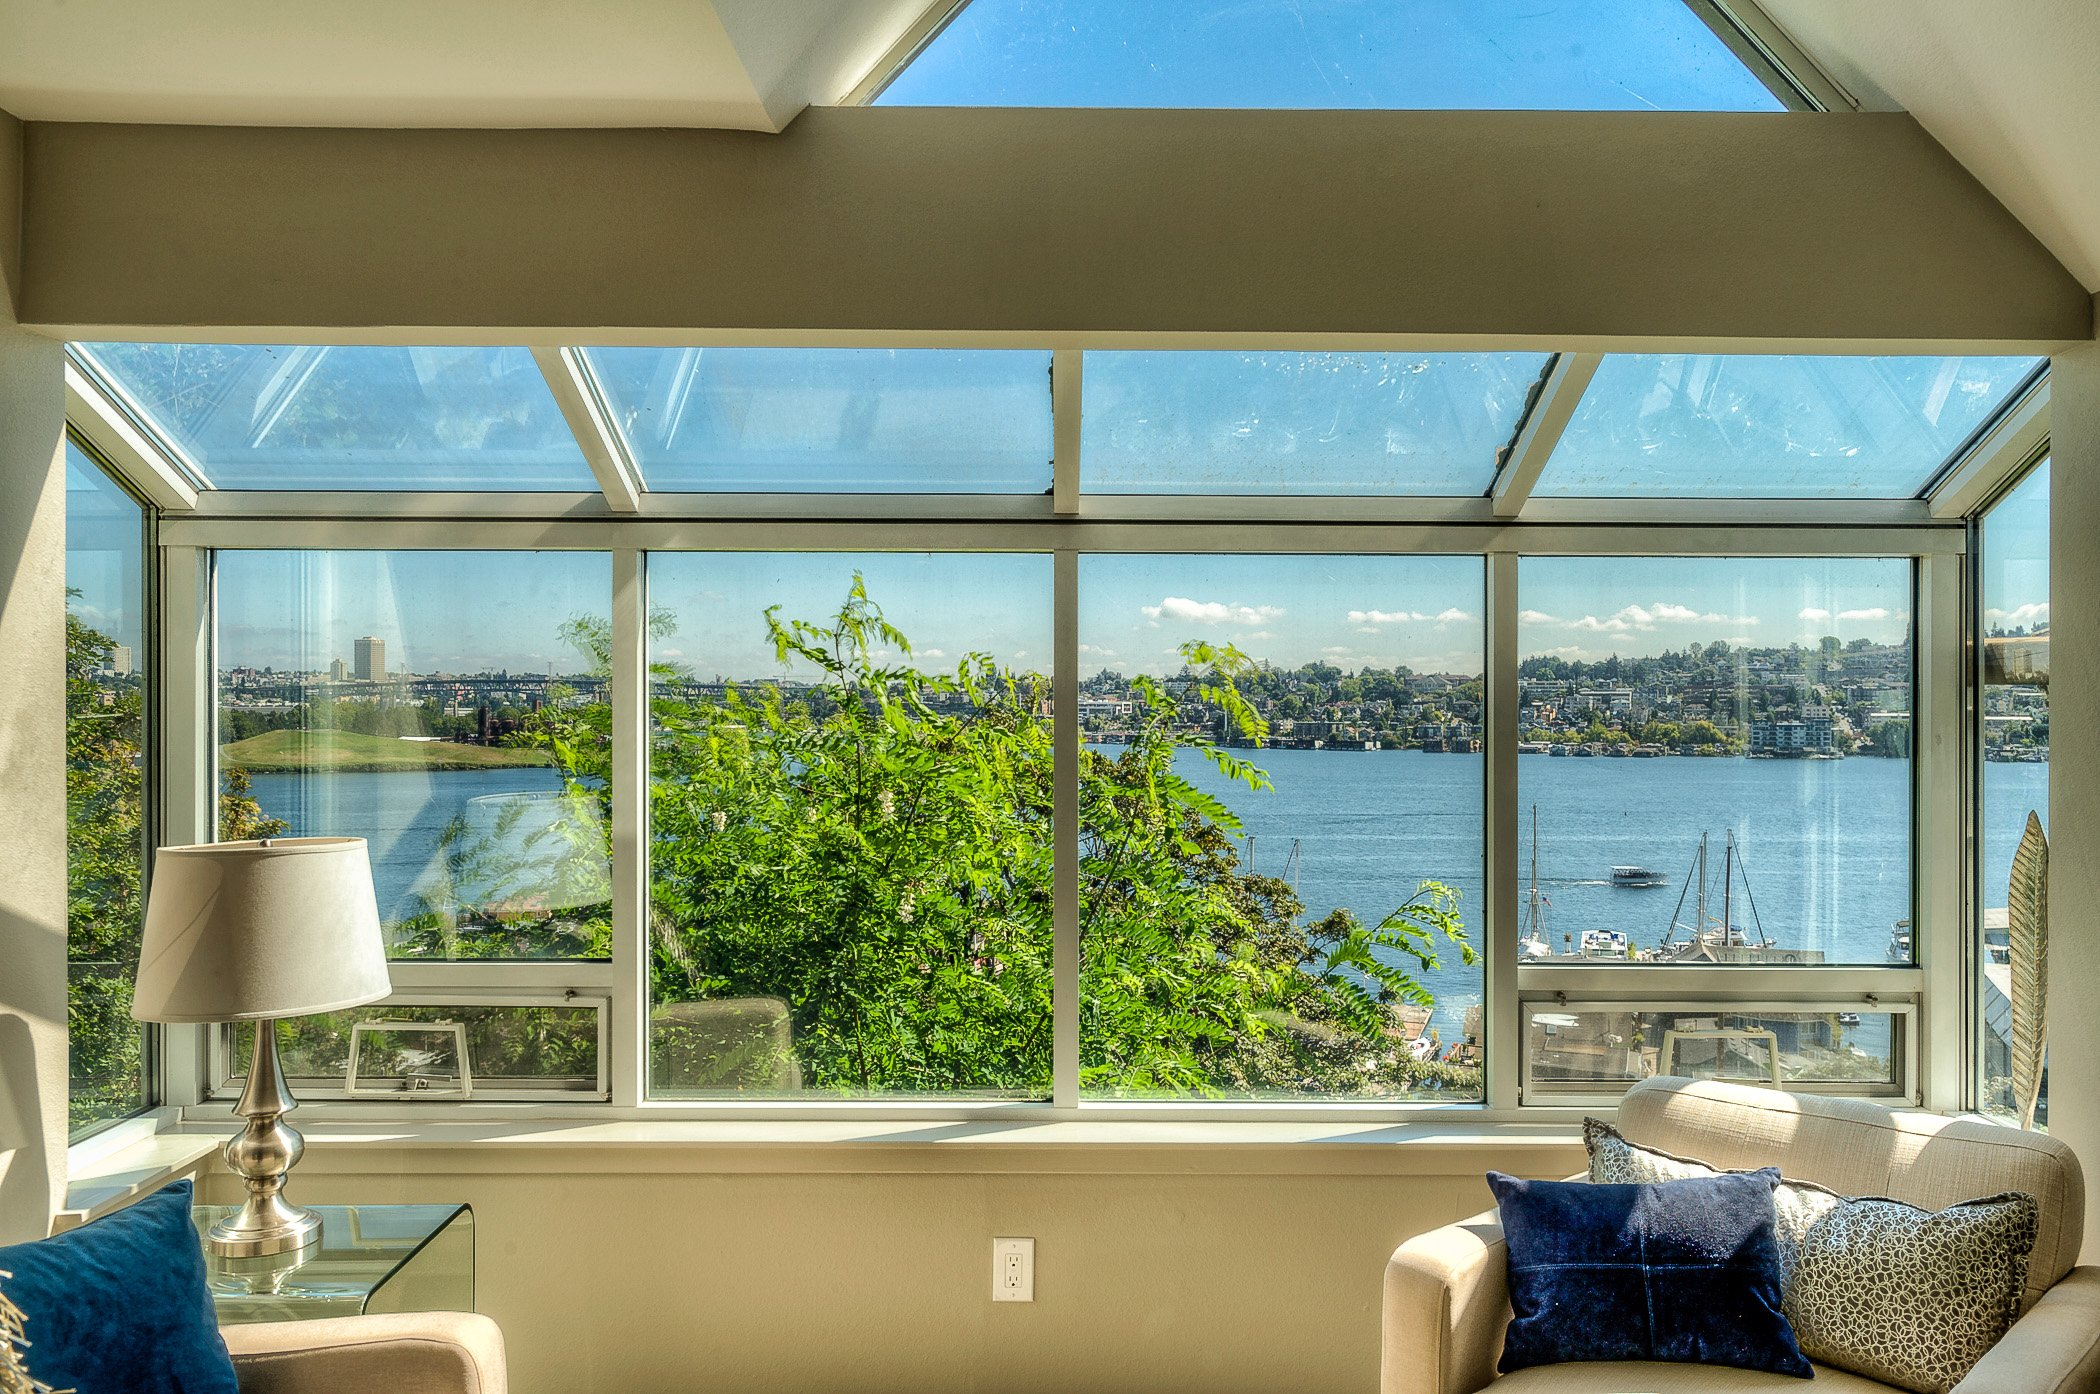 Terrific 180 degree views of Lake Union from this sizable 2 bedroom, 2 bath, end unit condo on East Queen Anne! The updated kitchen has beautiful new granite counters and stainless appliances. Private patio with fantastic views of the Lake & Gas Works Park. Master suite with 5 piece bath, walk in closet, patio slider & lake views. The 2nd bedroom has a murphy bed for den/bedroom flexibility. New carpets, gas fireplace, vaulted ceilings in the living room & 2 parking spaces in the secure garage!